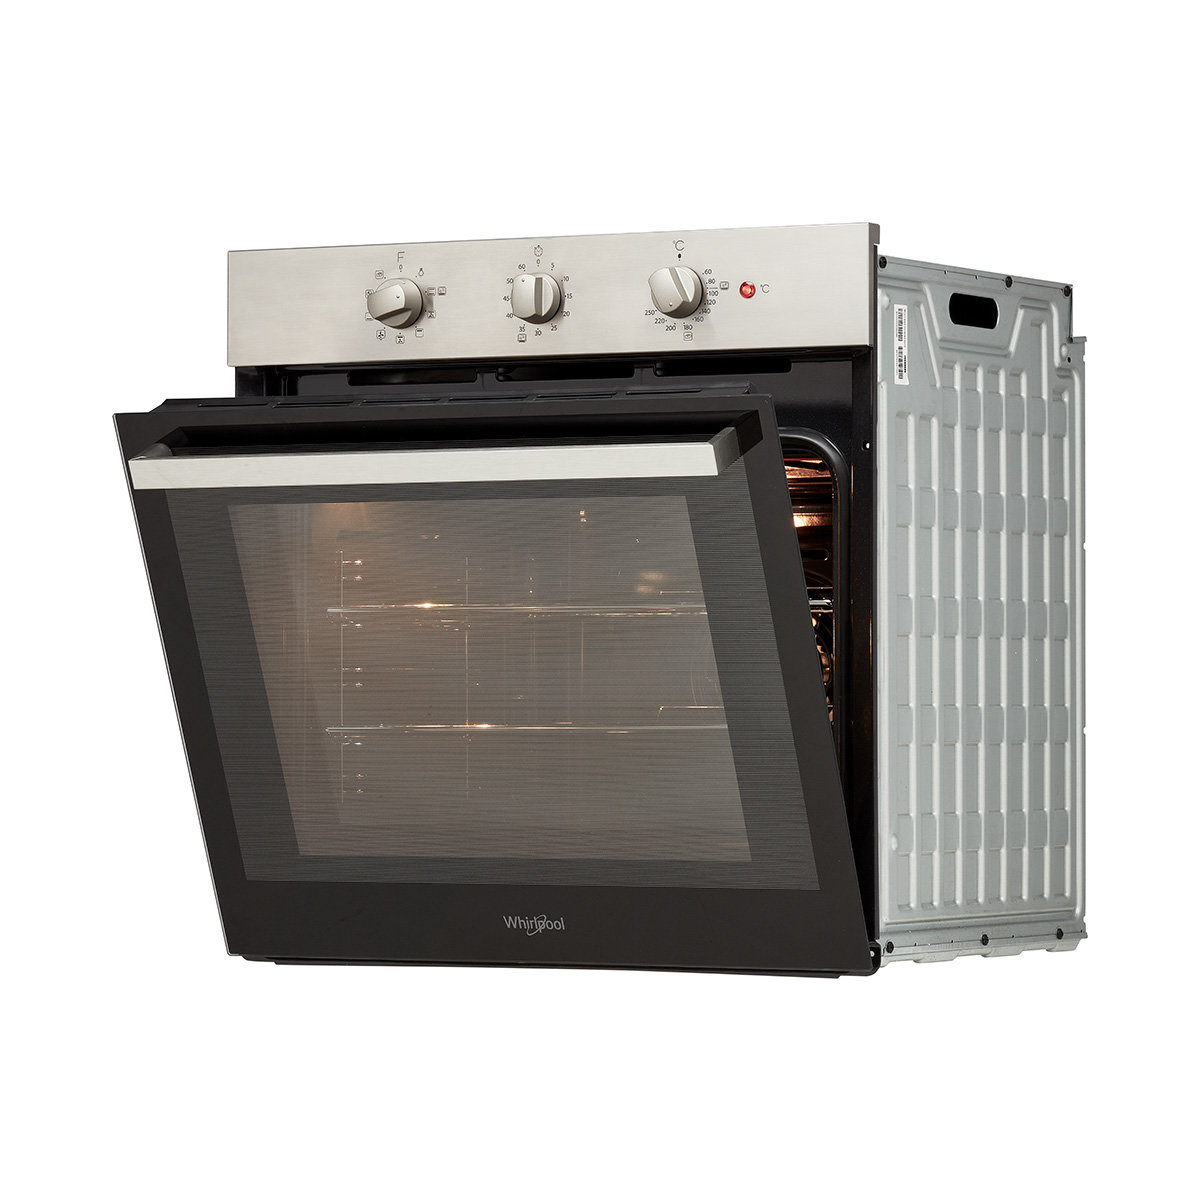 Euromate Grill Whirlpool Akp3534hixaus 60cm Electric Built In Oven